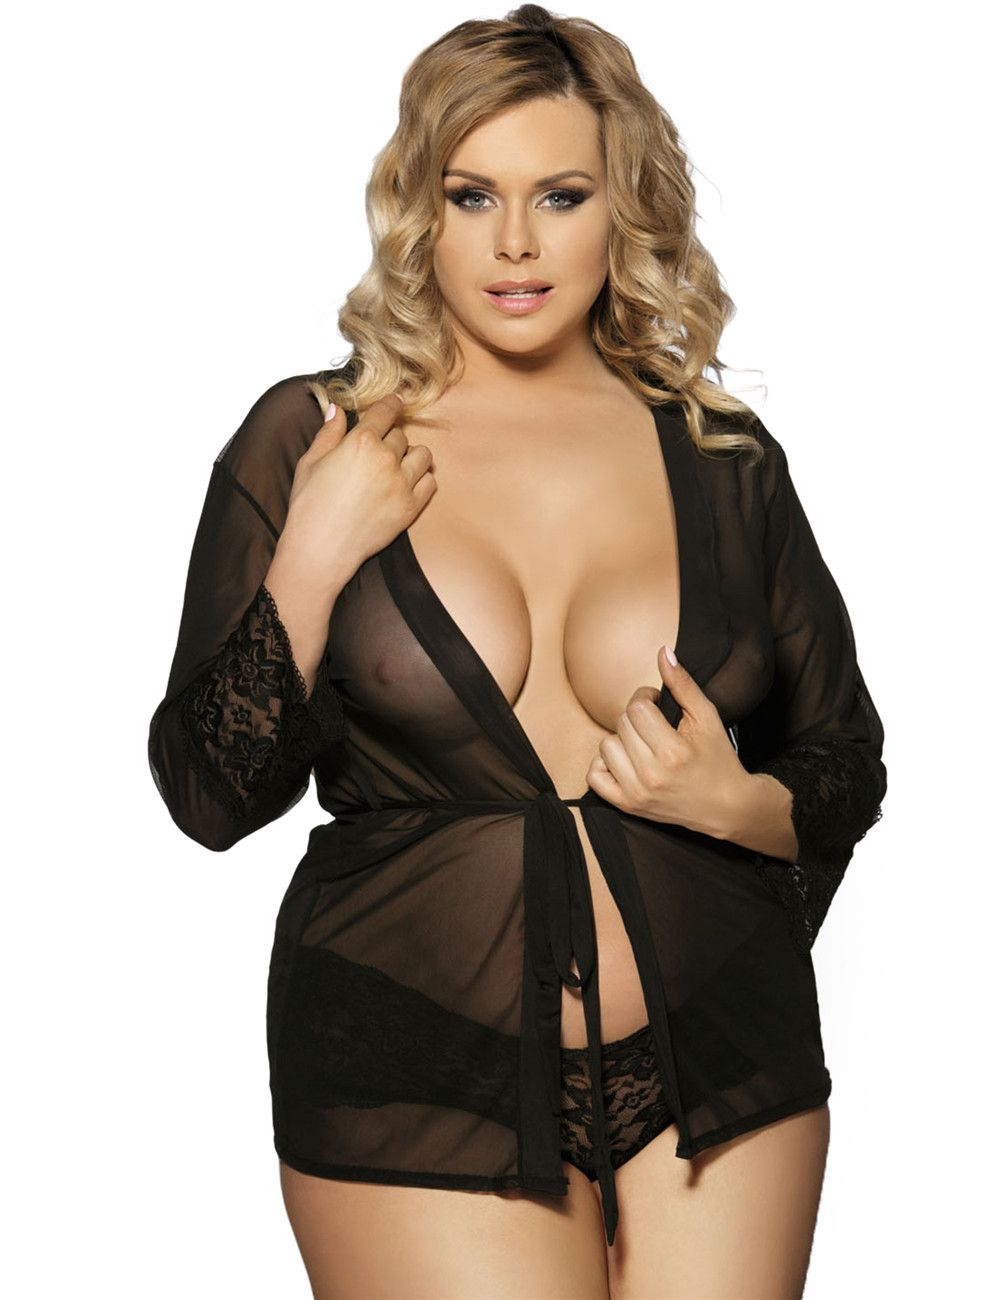 61a16f823b4c4 Plus Size black Babydoll   Lingerie For Fat Women From  imsexy4u.com ...